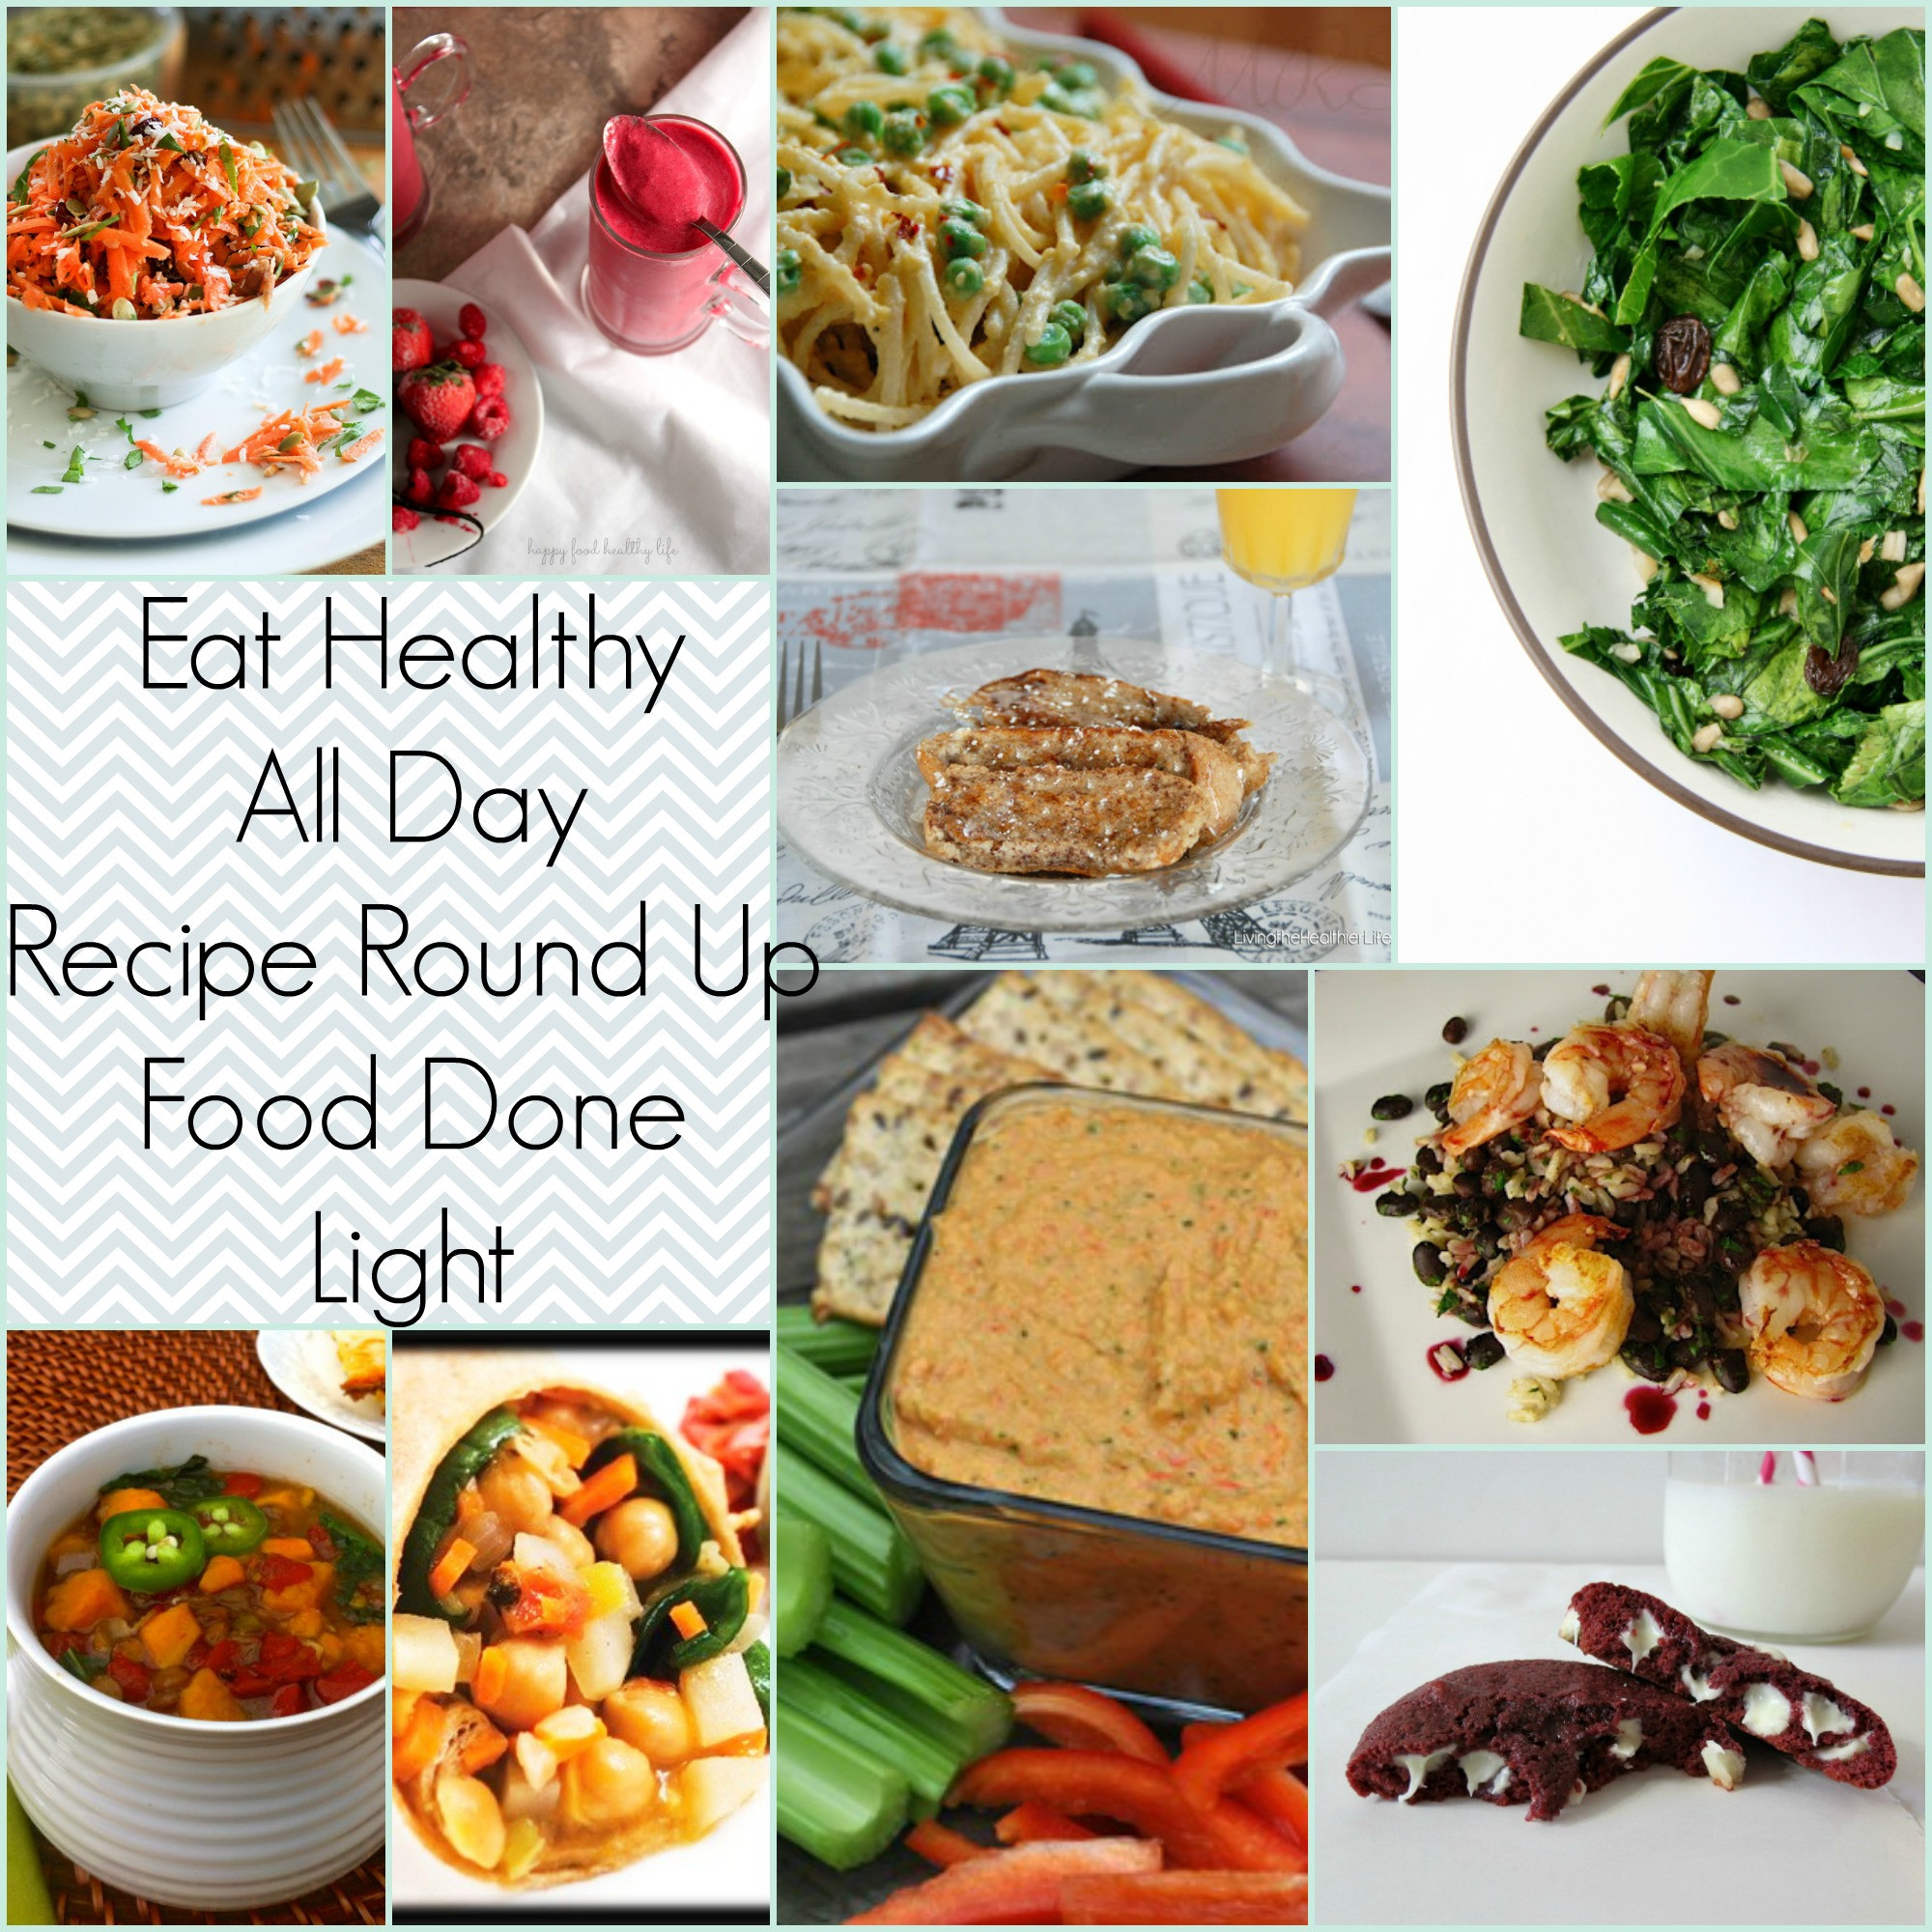 Healthy Breakfast For Dinner  Eat Healthy All Day Recipe Round Up